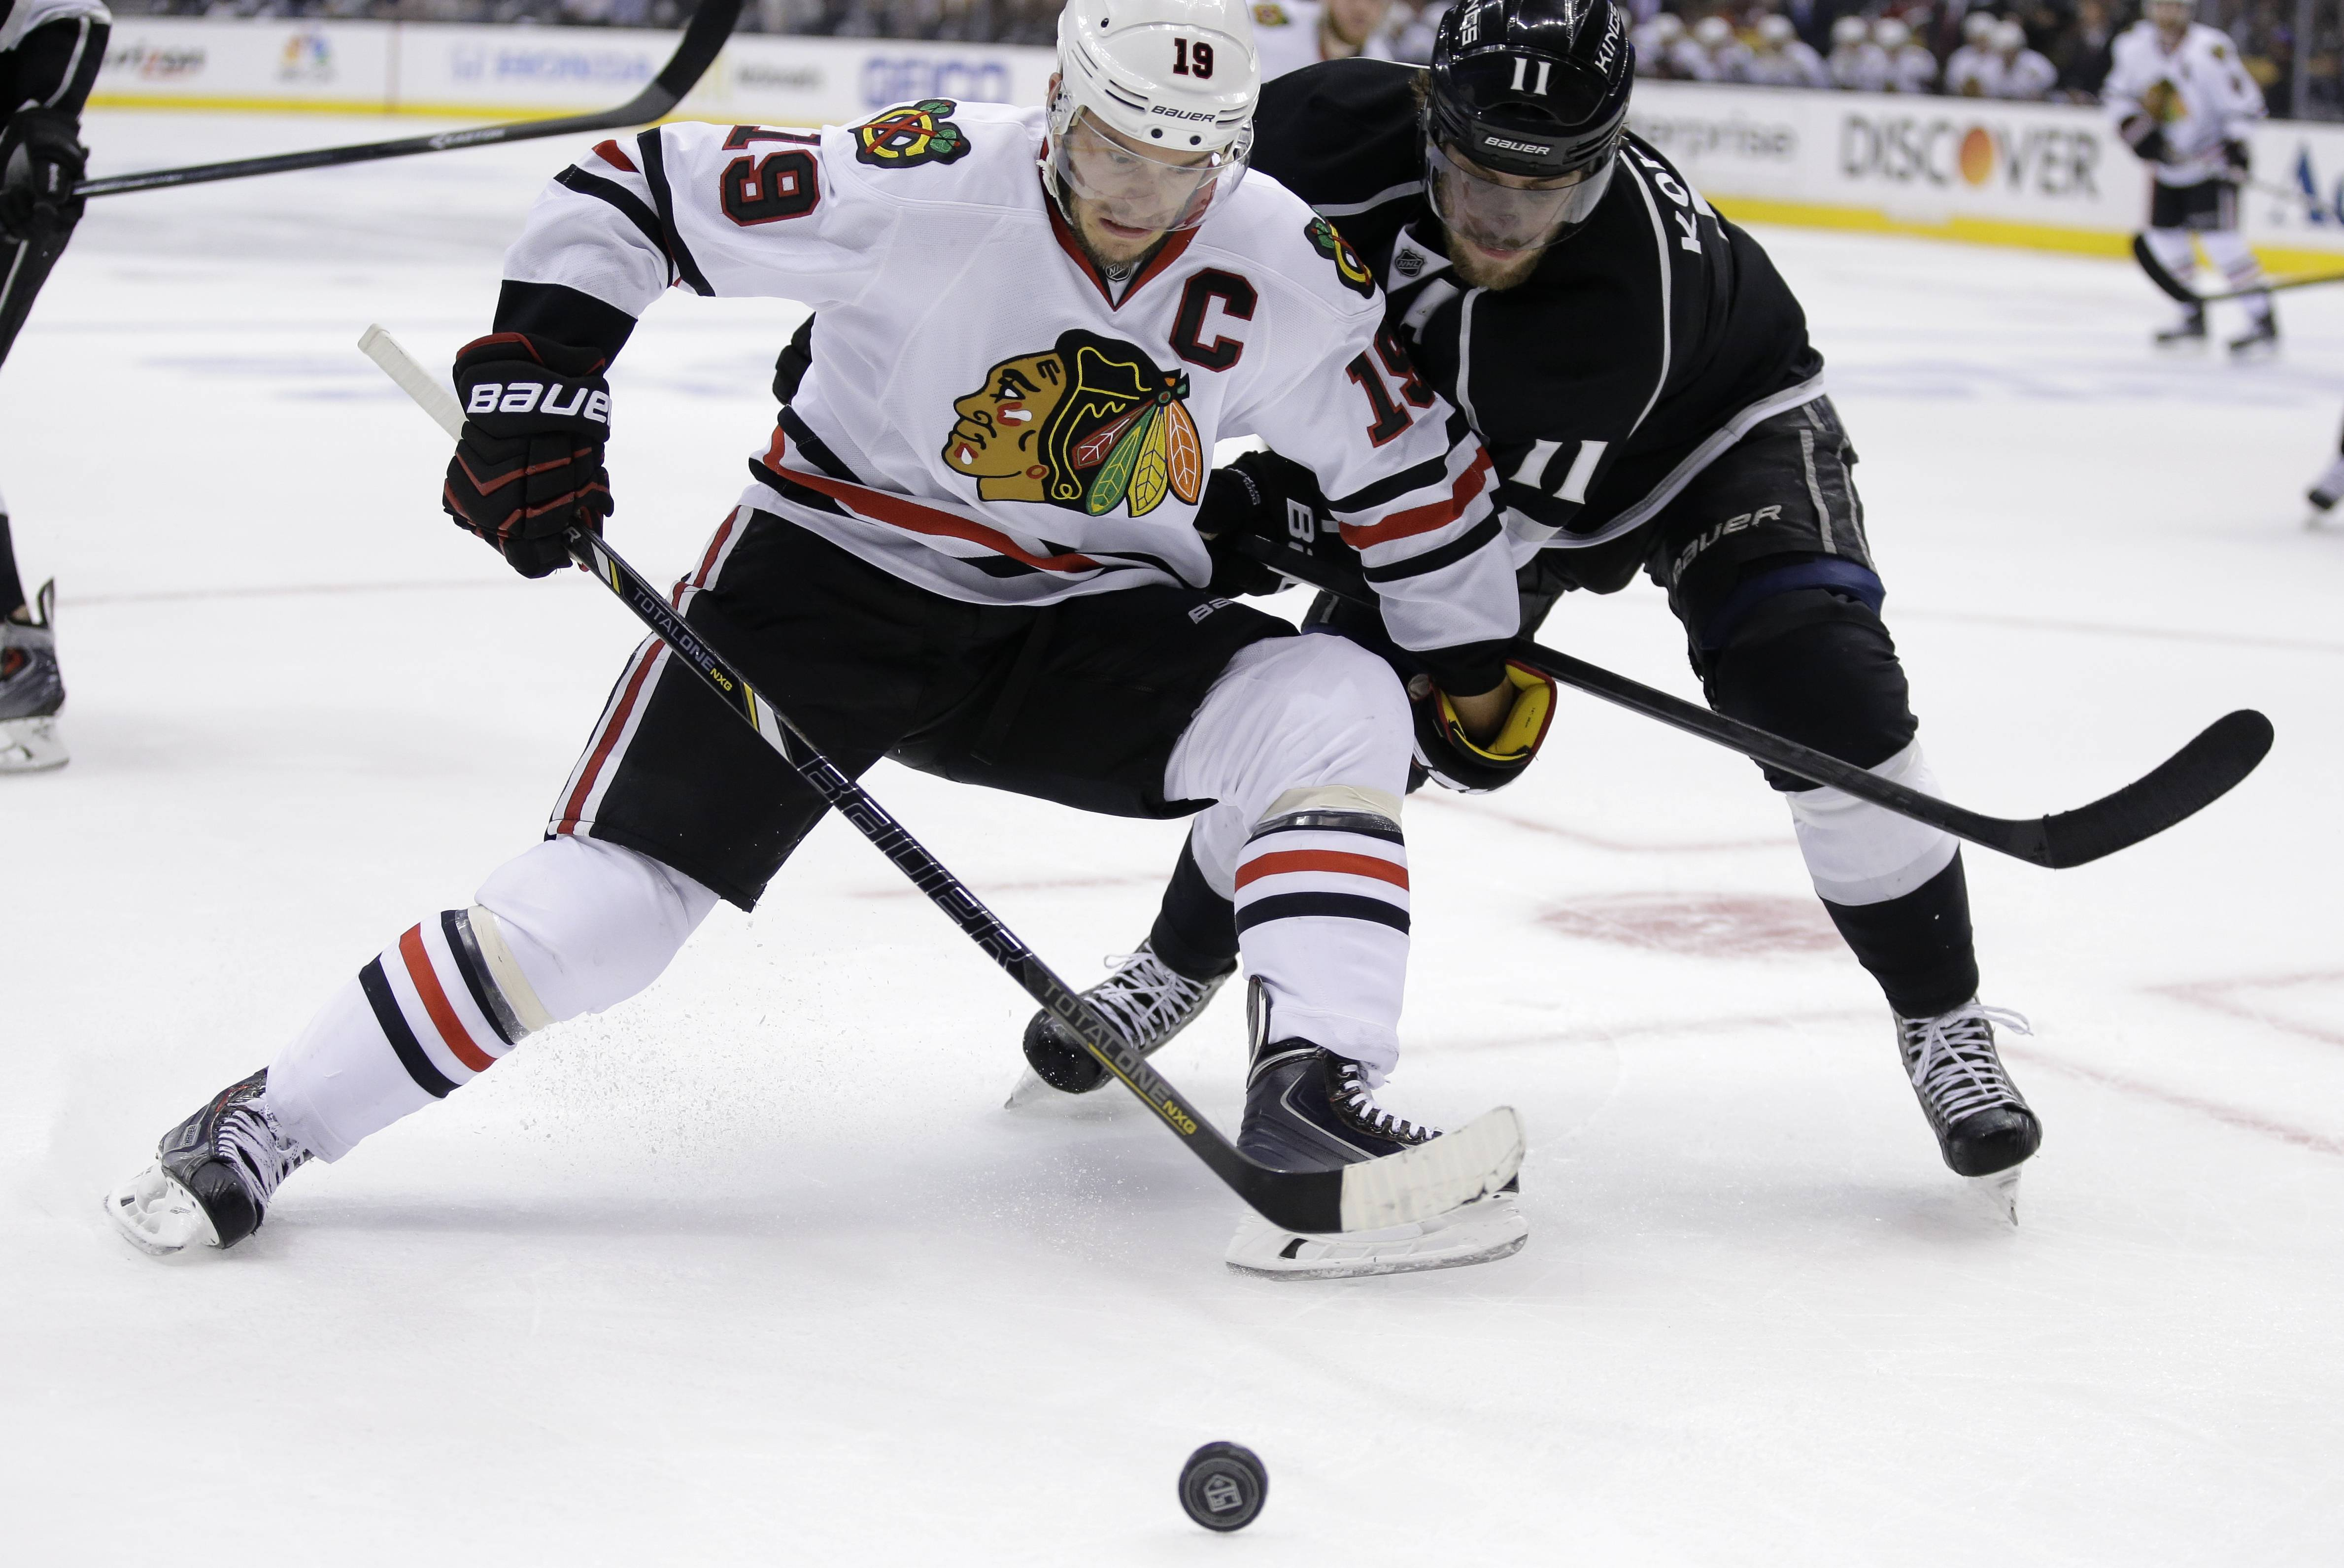 Blackhawks captain Jonathan Toews, left, battles Kings center Anze Kopitar for the puck during Friday night's Game 6 of the Western Conference finals in Los Angeles.